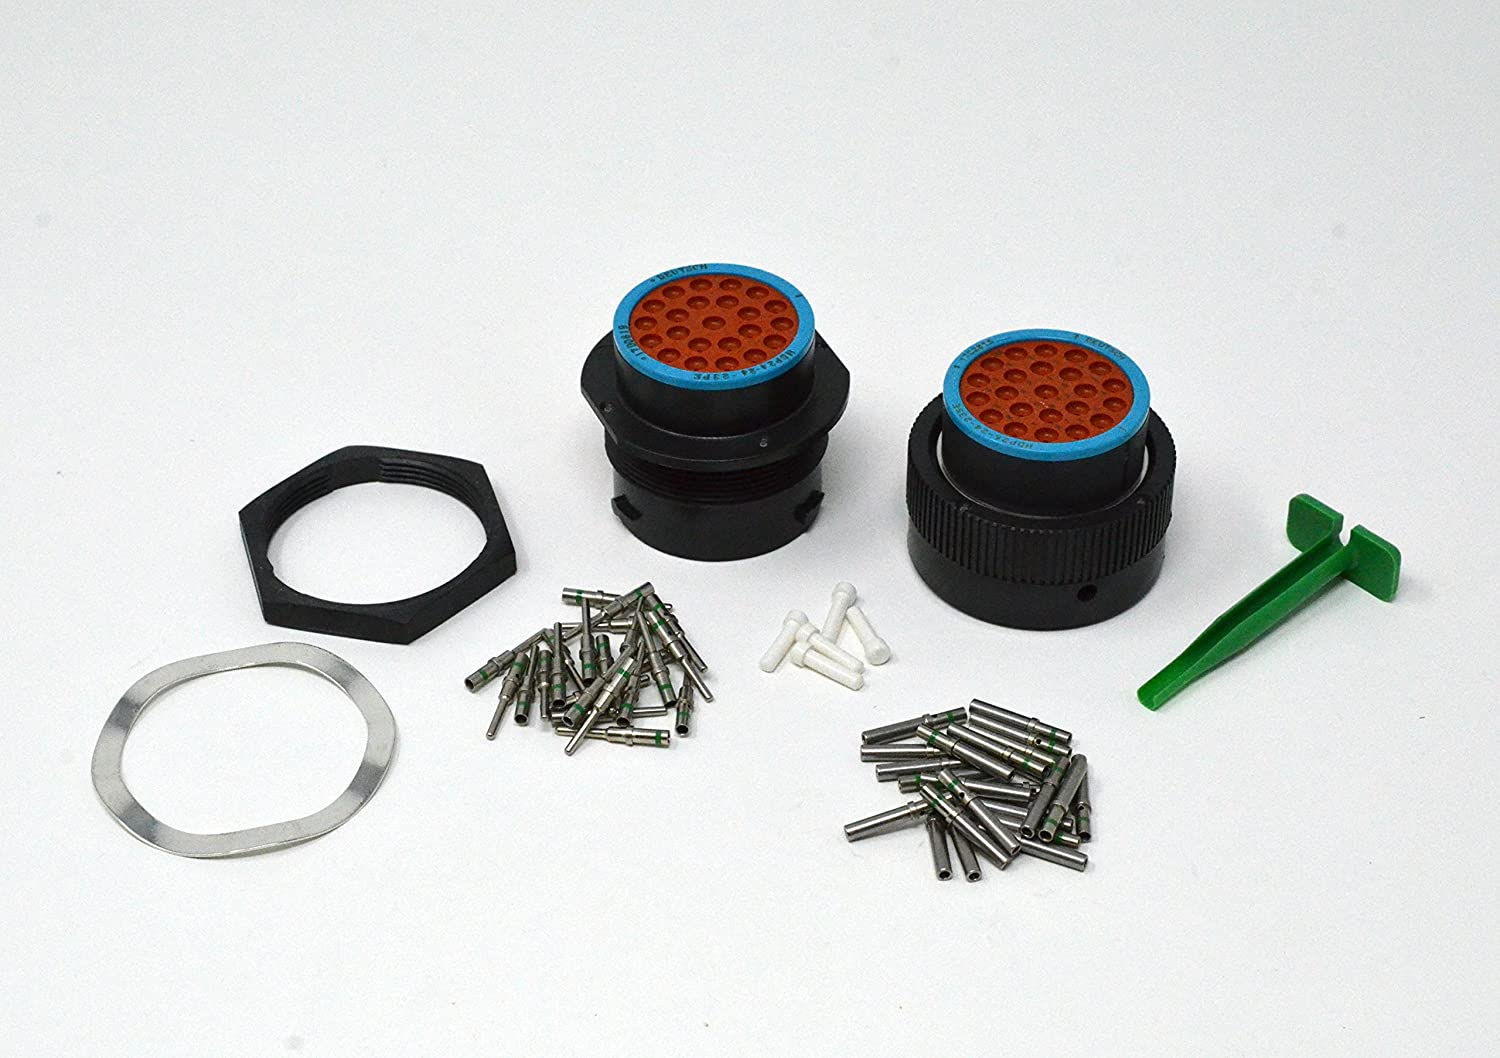 Deutsch HDP20 Bulkhead 23-pin Connector kit 14-16 AWG Solid Contacts